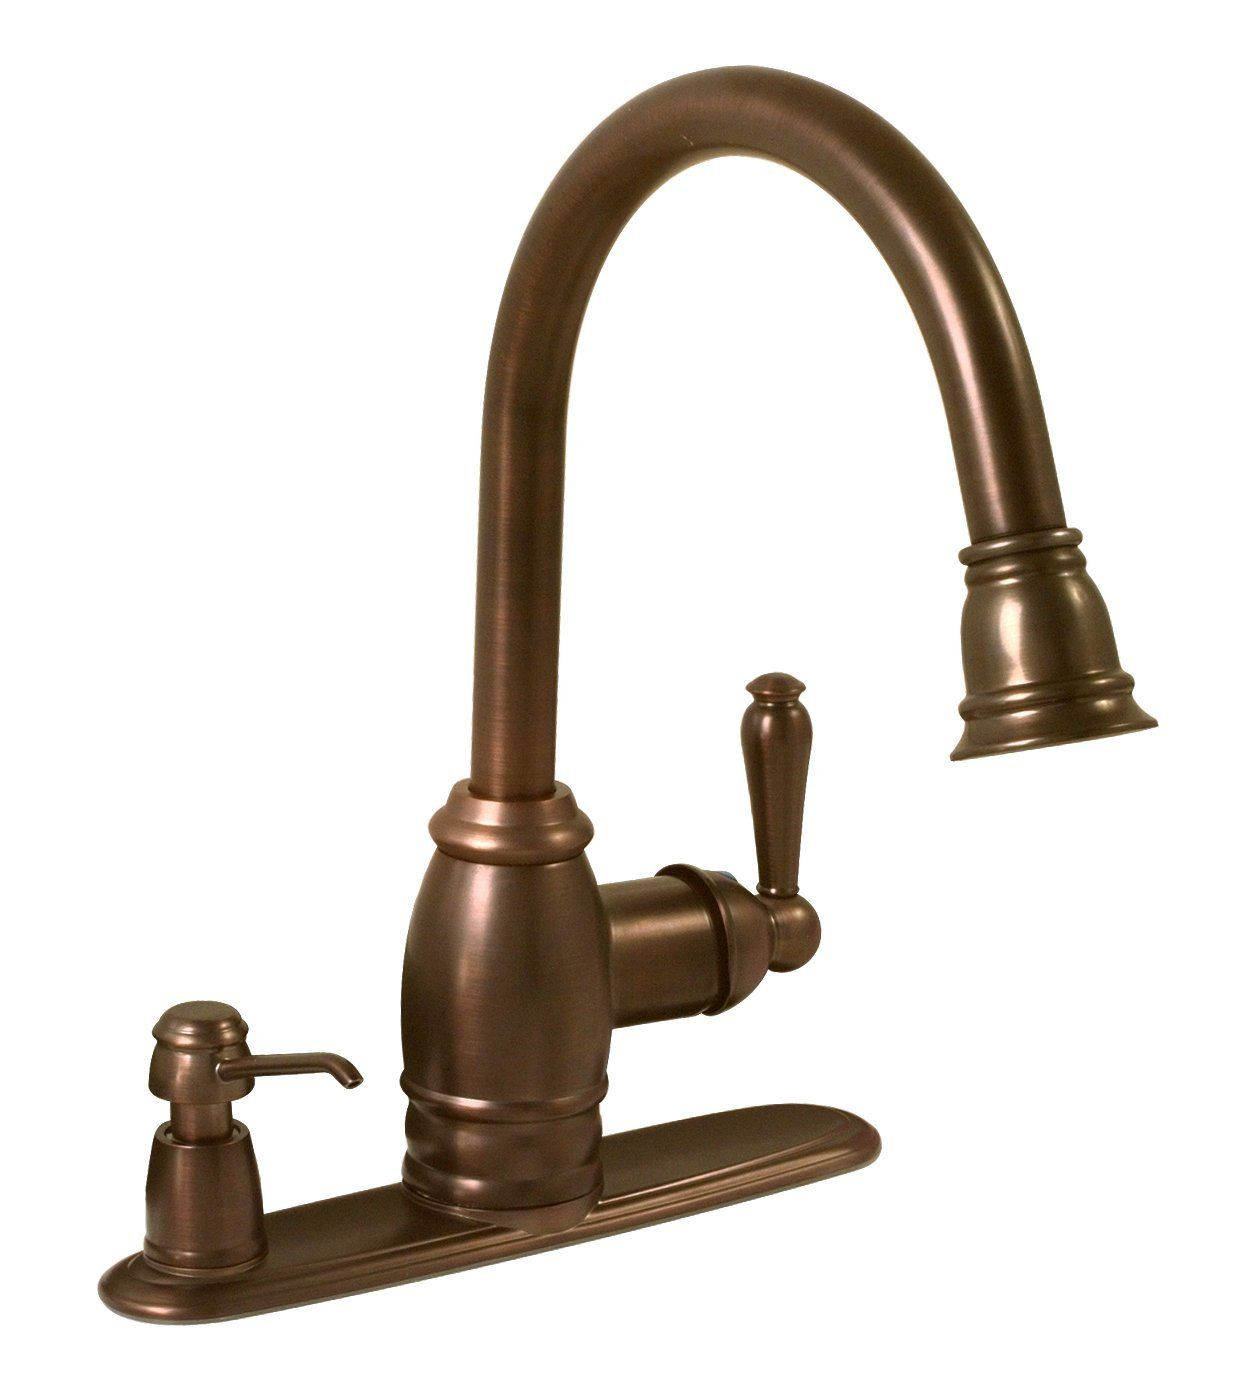 Premier 120112 Sonoma Pull Down Kitchen Faucet With Matching Soap  Dispenser, Oil Rubbed Bronze